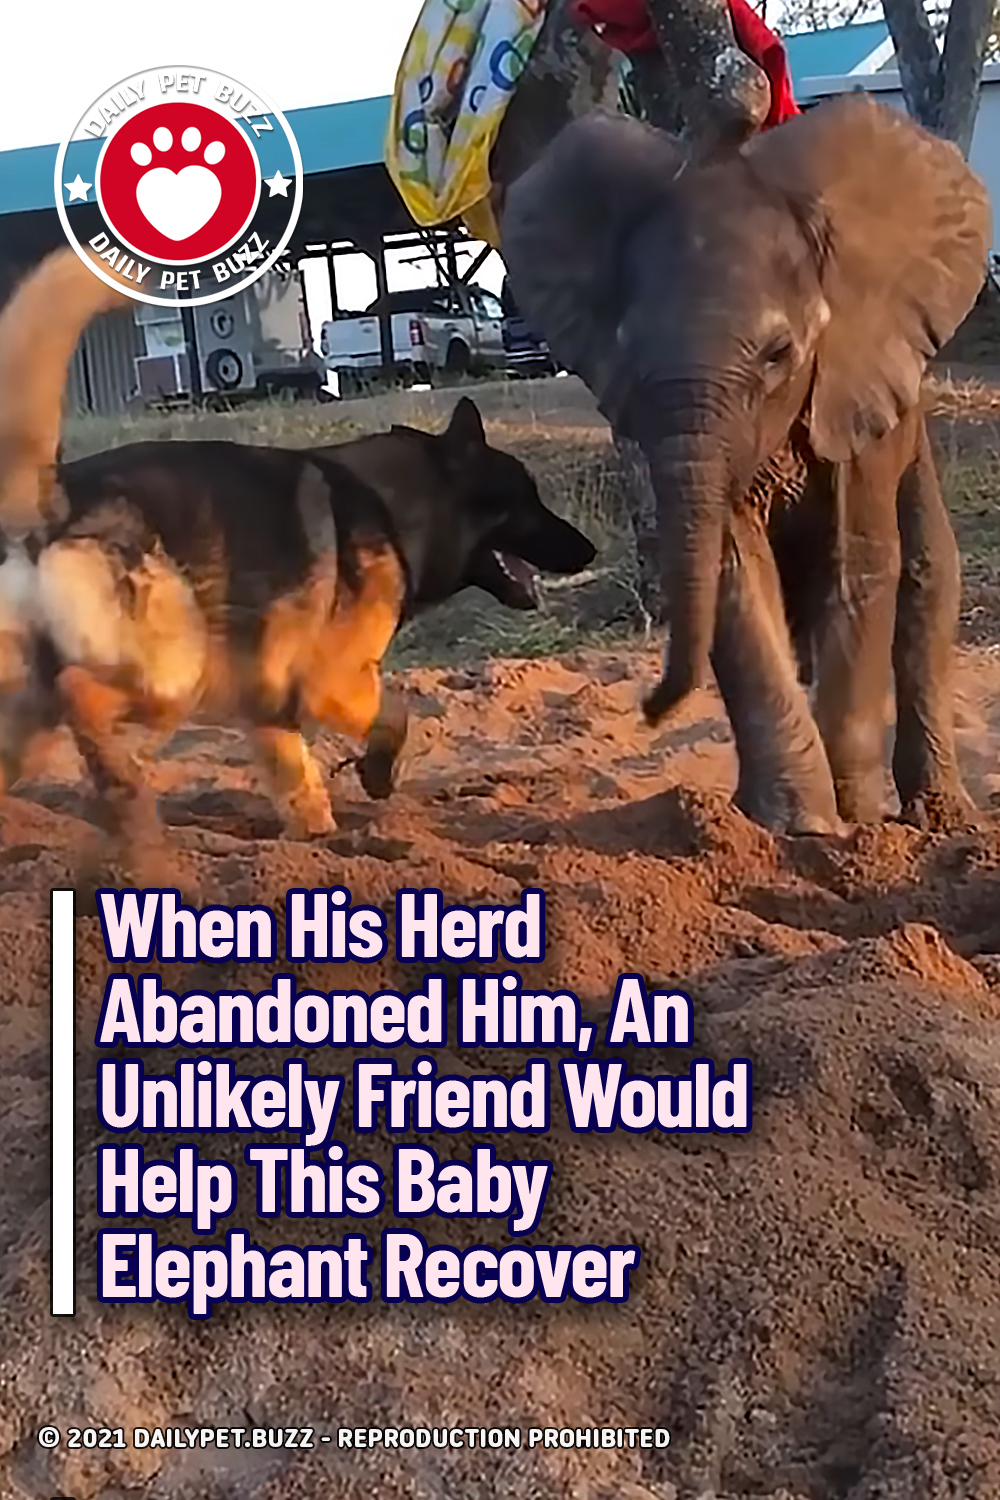 When His Herd Abandoned Him, An Unlikely Friend Would Help This Baby Elephant Recover